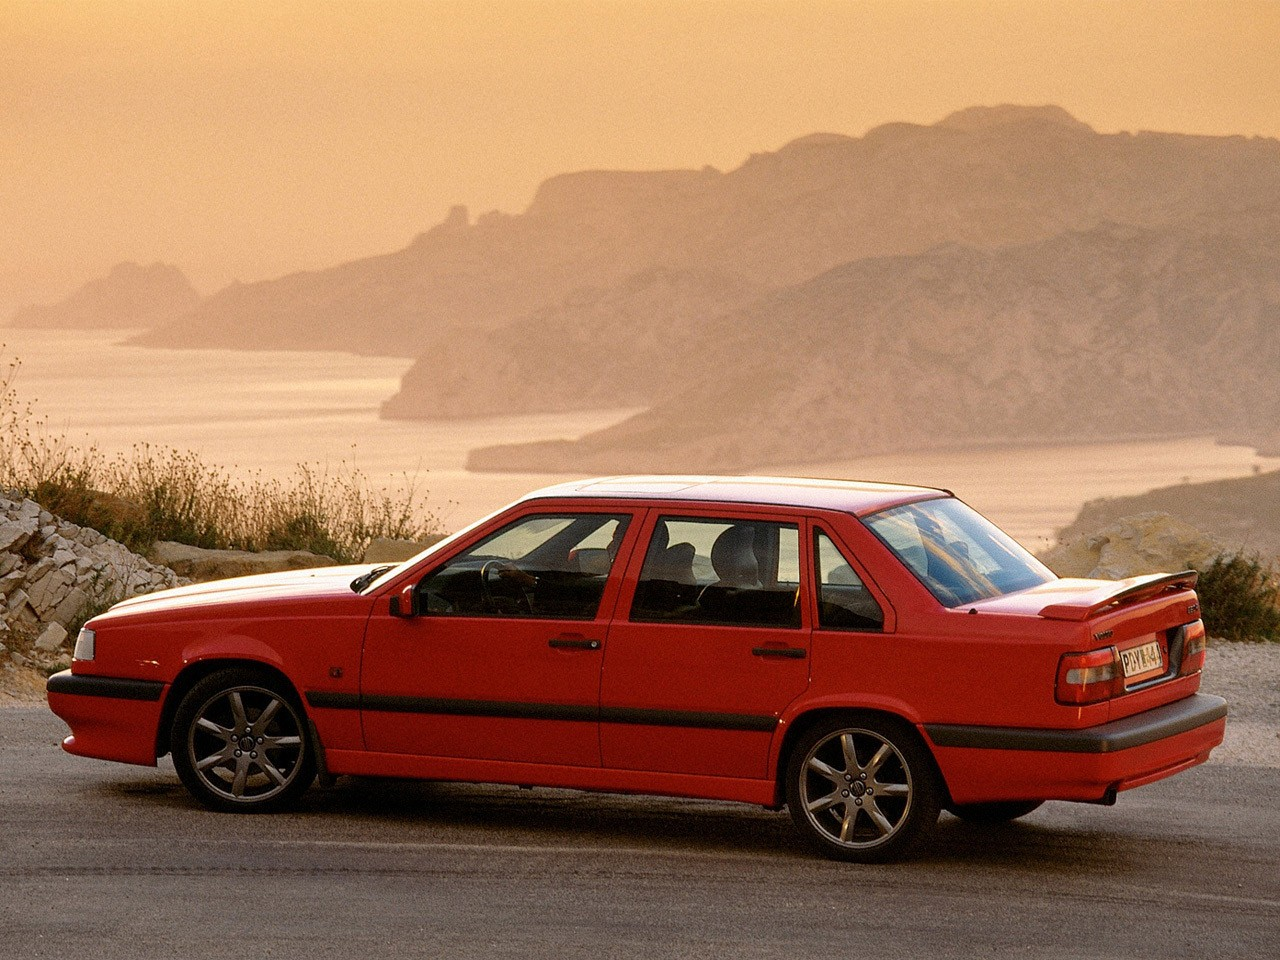 Volvo 850 R 1994 on alfa romeo seats